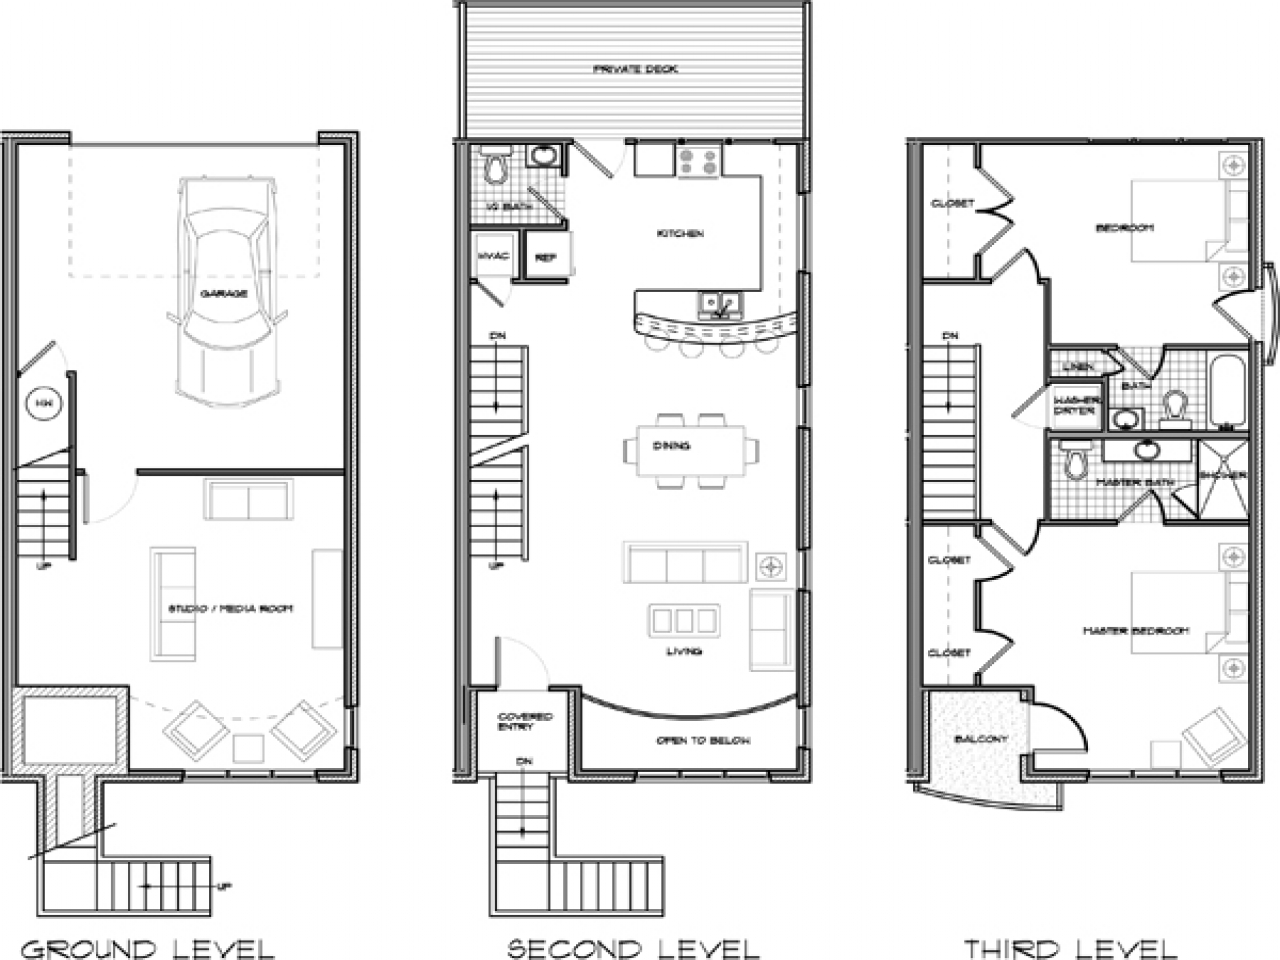 Louisiana shotgun house floor plans new orleans shotgun for New orleans home floor plans